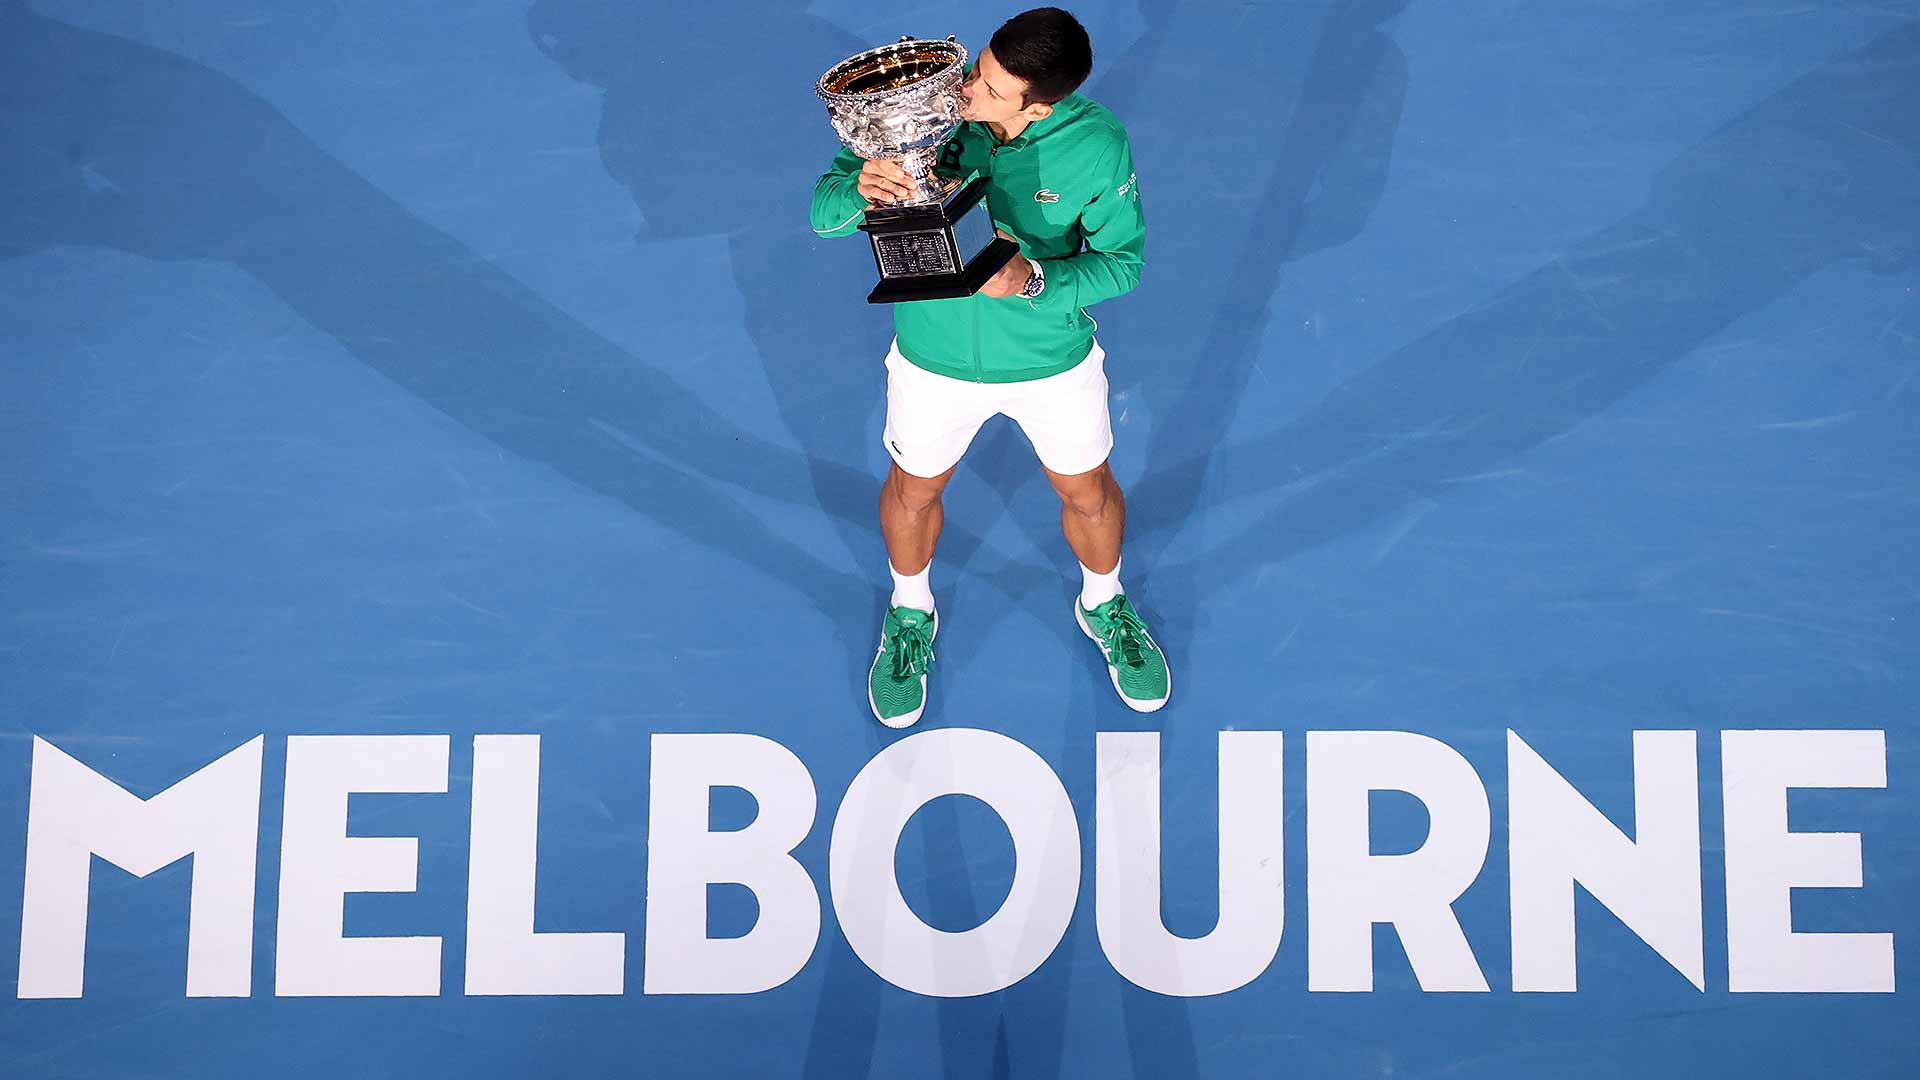 Novak Djokovic creates more history on Sunday at the Australian Open.